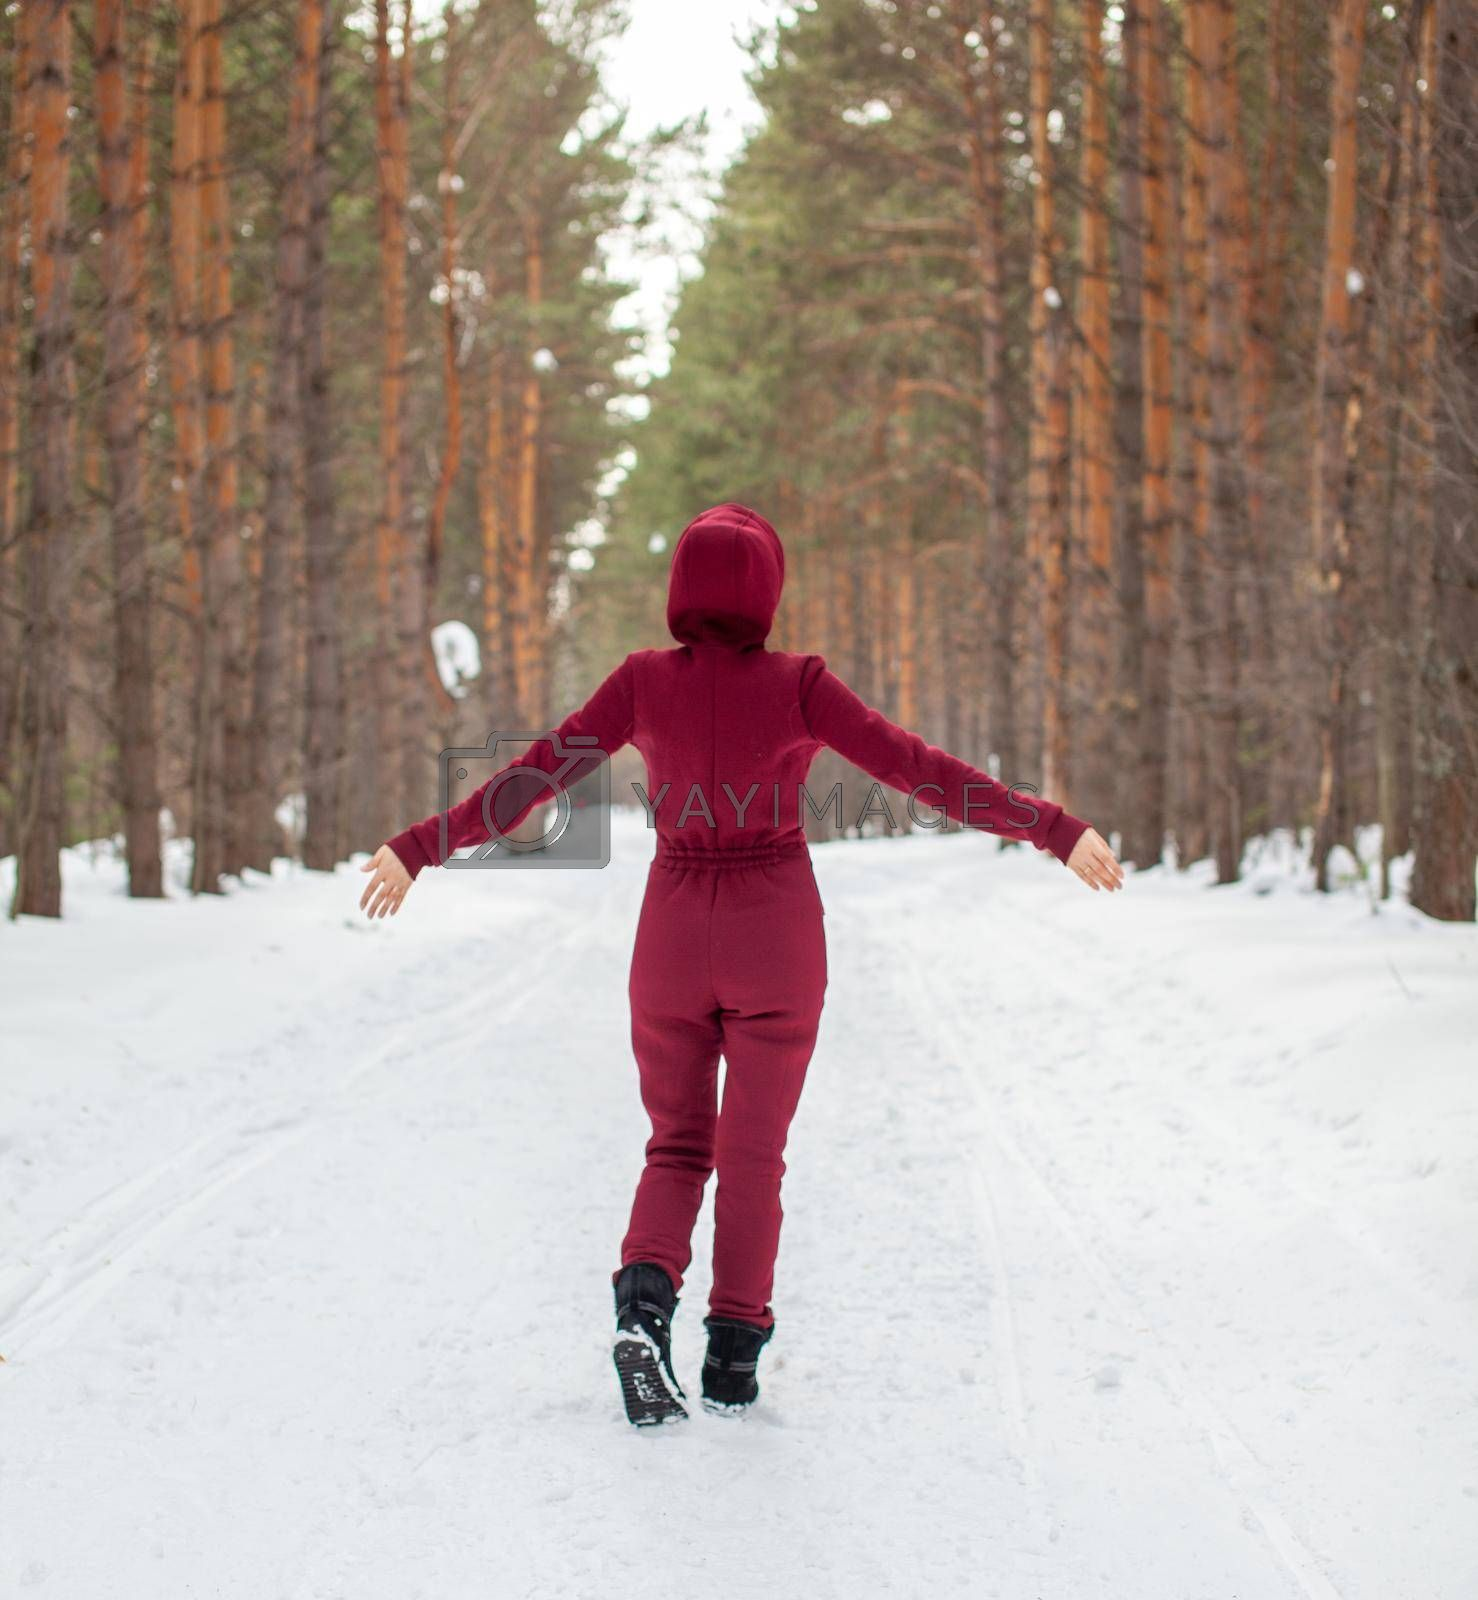 Winter walk in a snow-covered forest, A girl with a red jumpsuit and jacket walks among tall trees in nature. Solitude and relaxation from the hustle and bustle of the city.